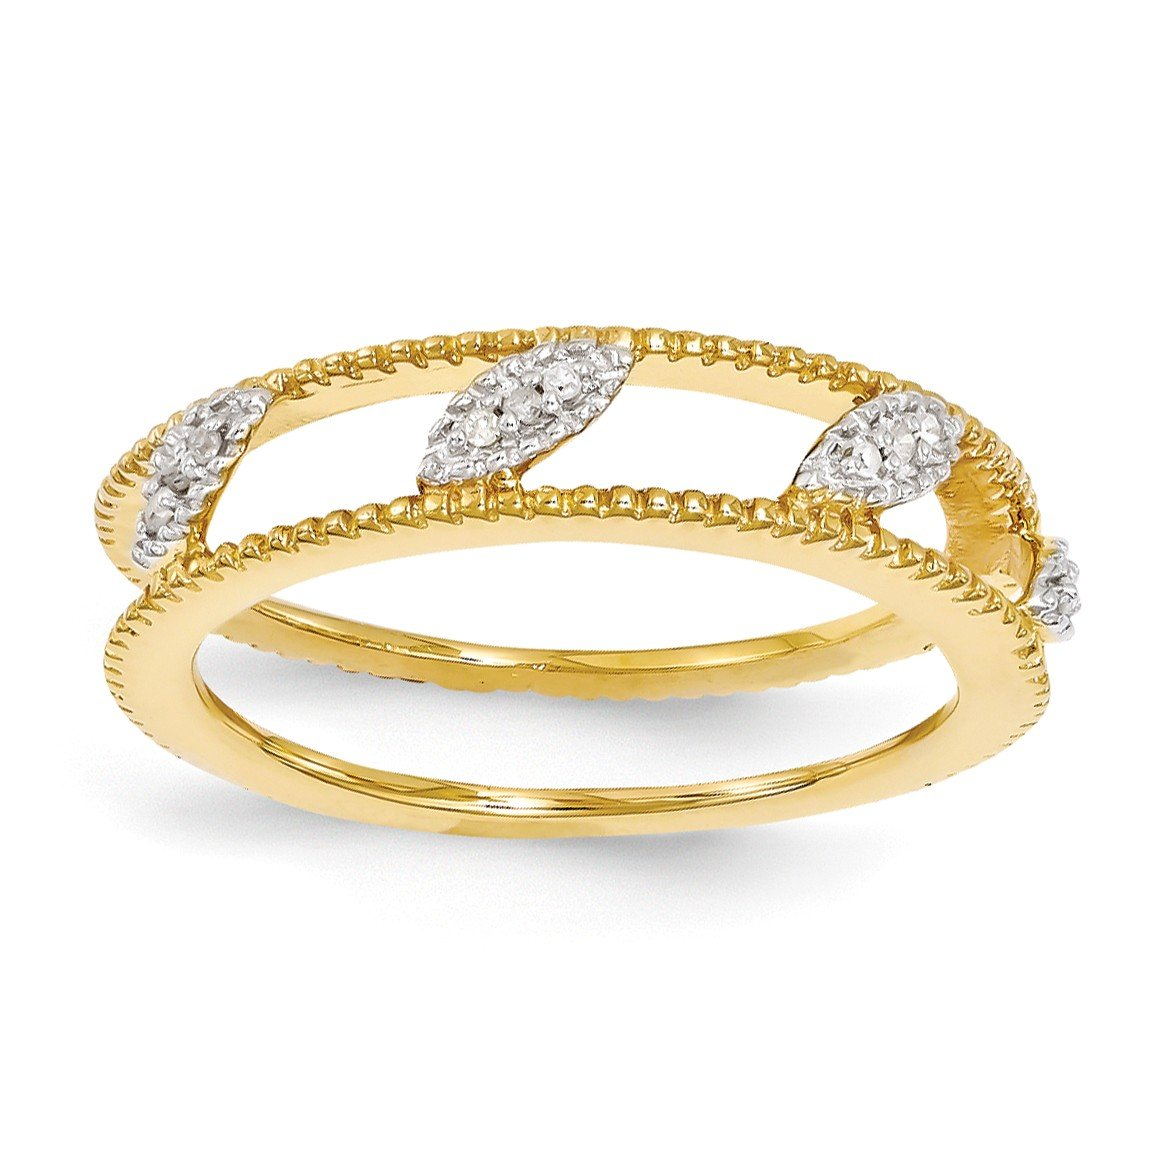 Bonyak Jewelry Sterling Silver Stackable Expressions Gold-Plated Diamond Jacket Ring - Size 10